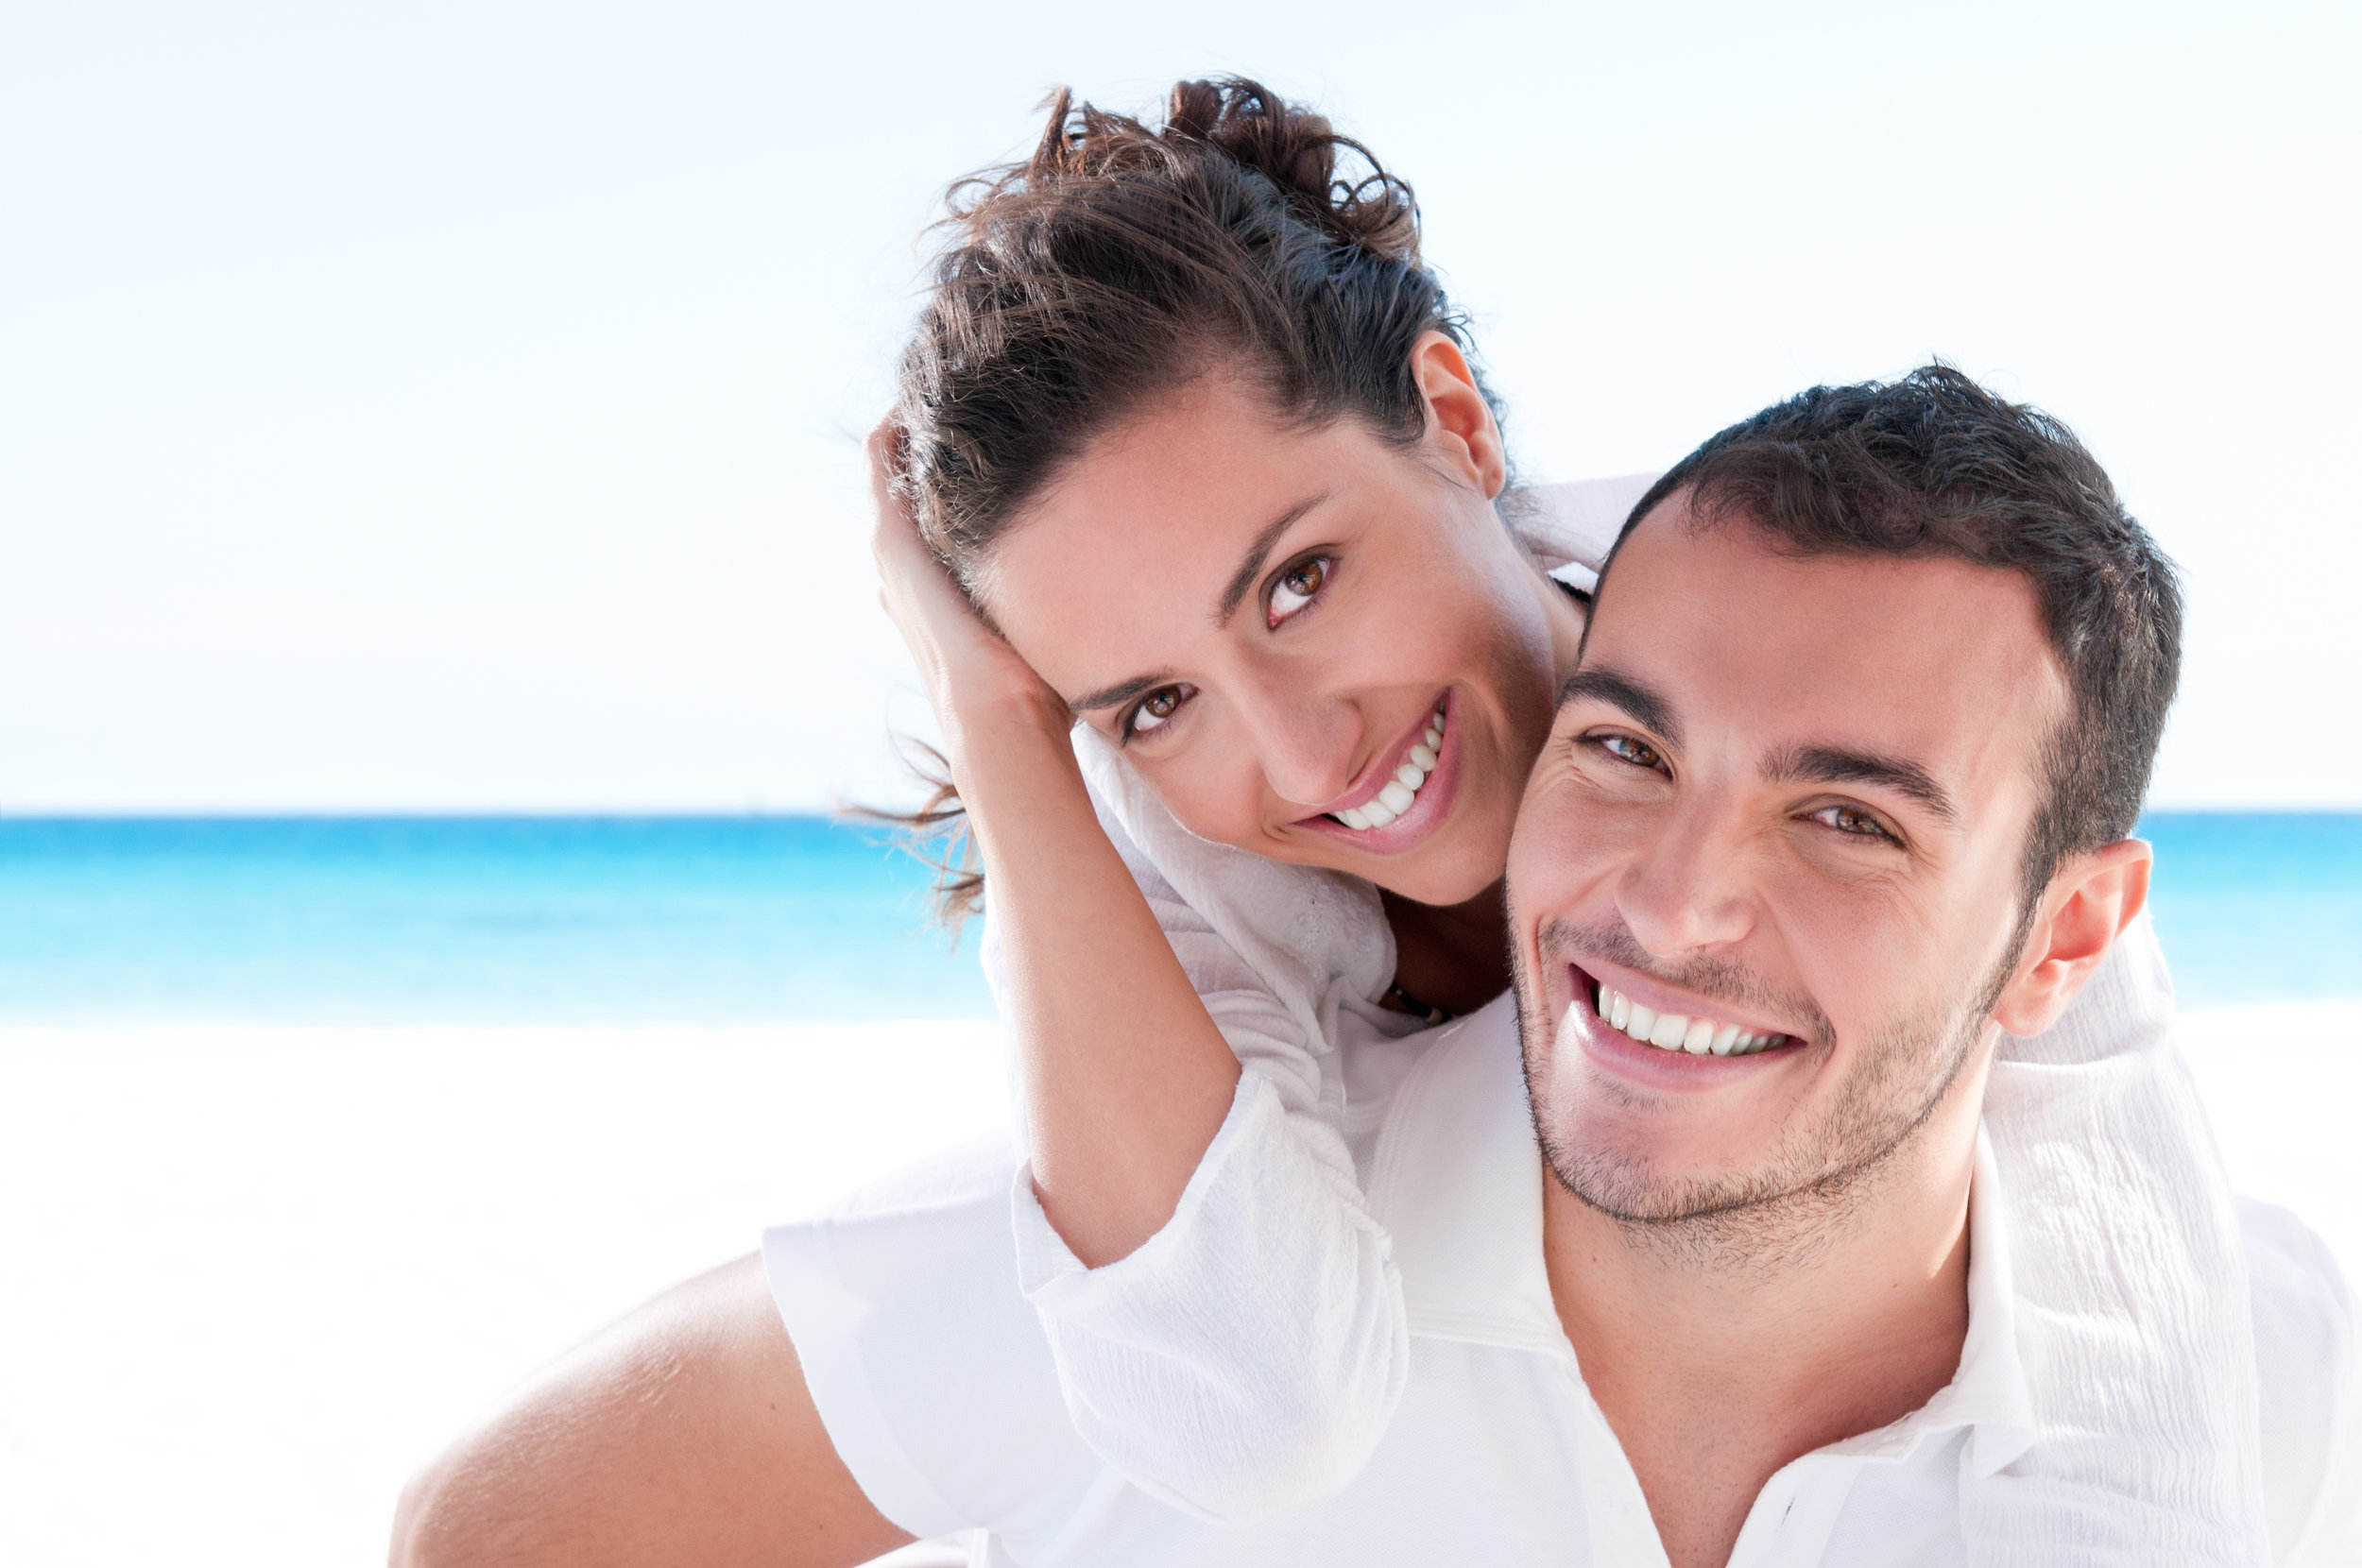 smiling couple at beach.JPG